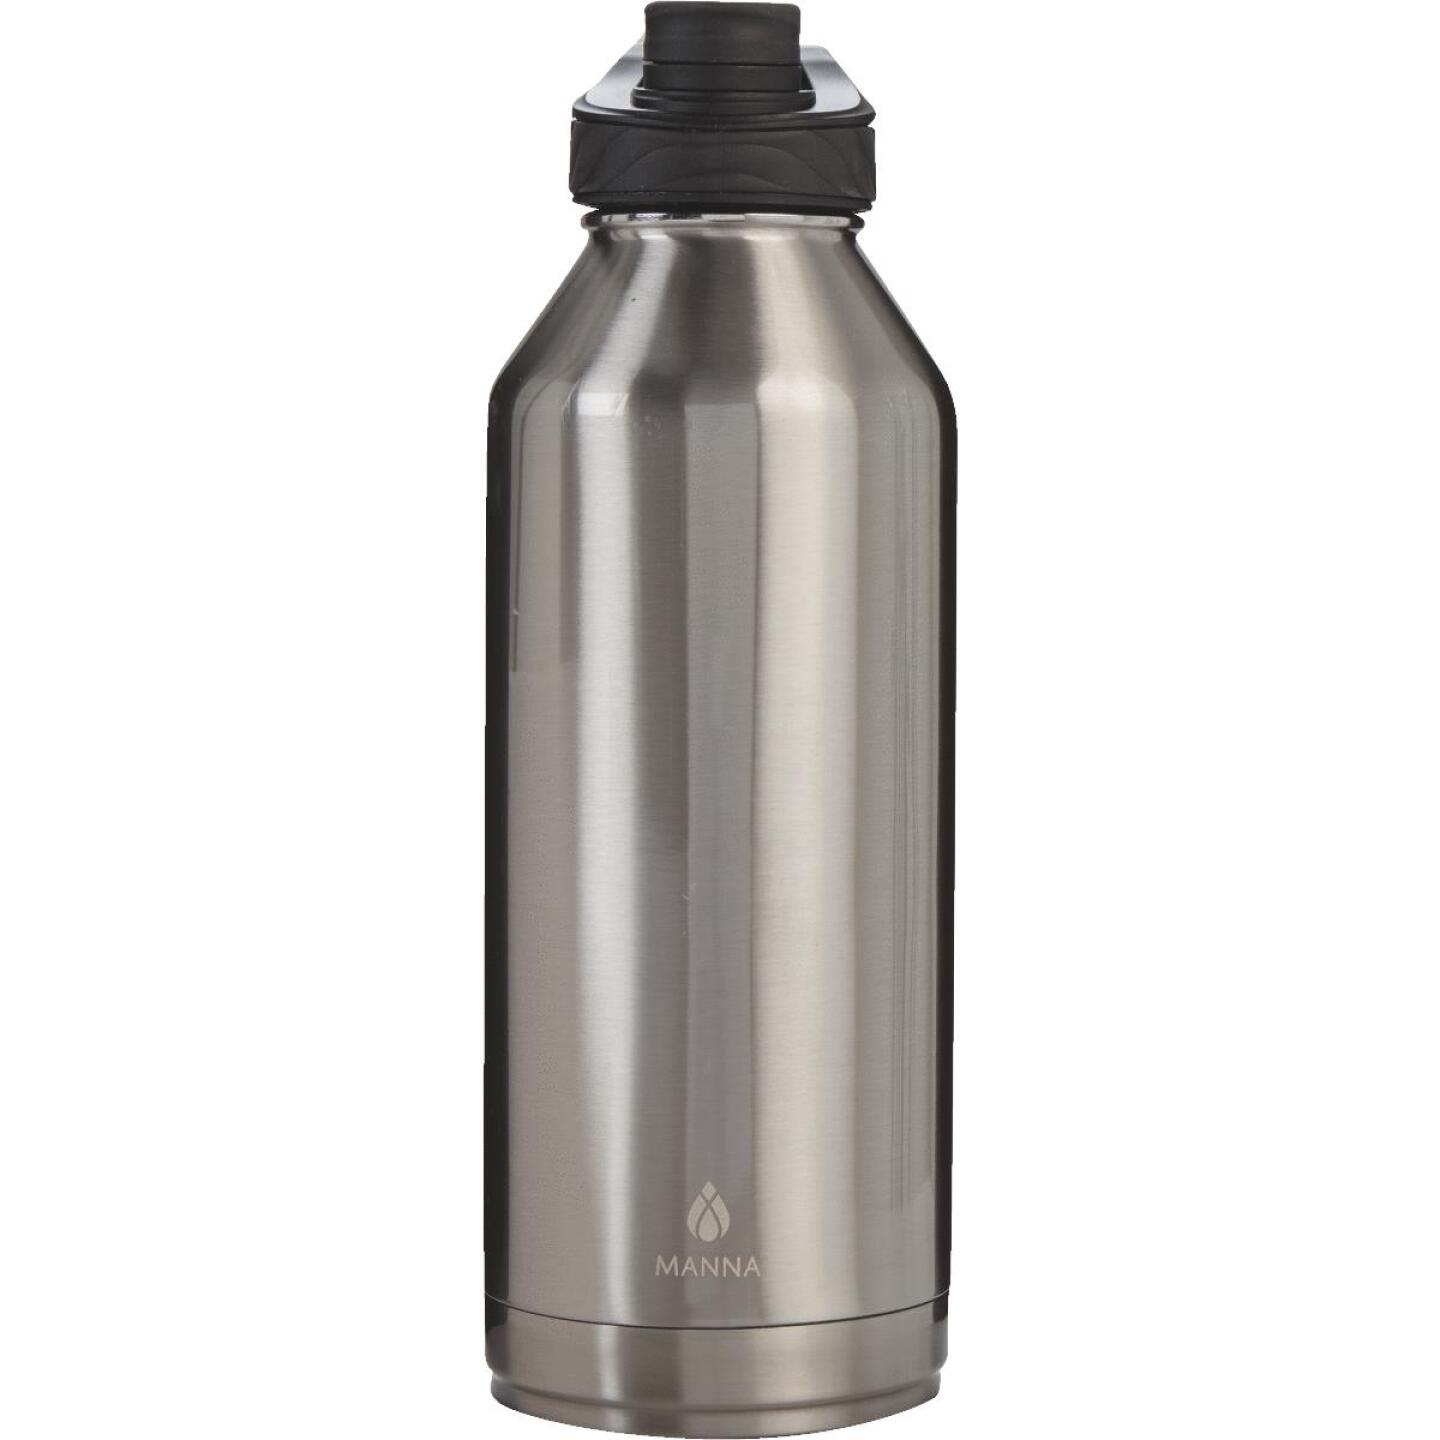 Manna Convoy 80 Oz. Stainless Steel Insulated Bottle Image 1